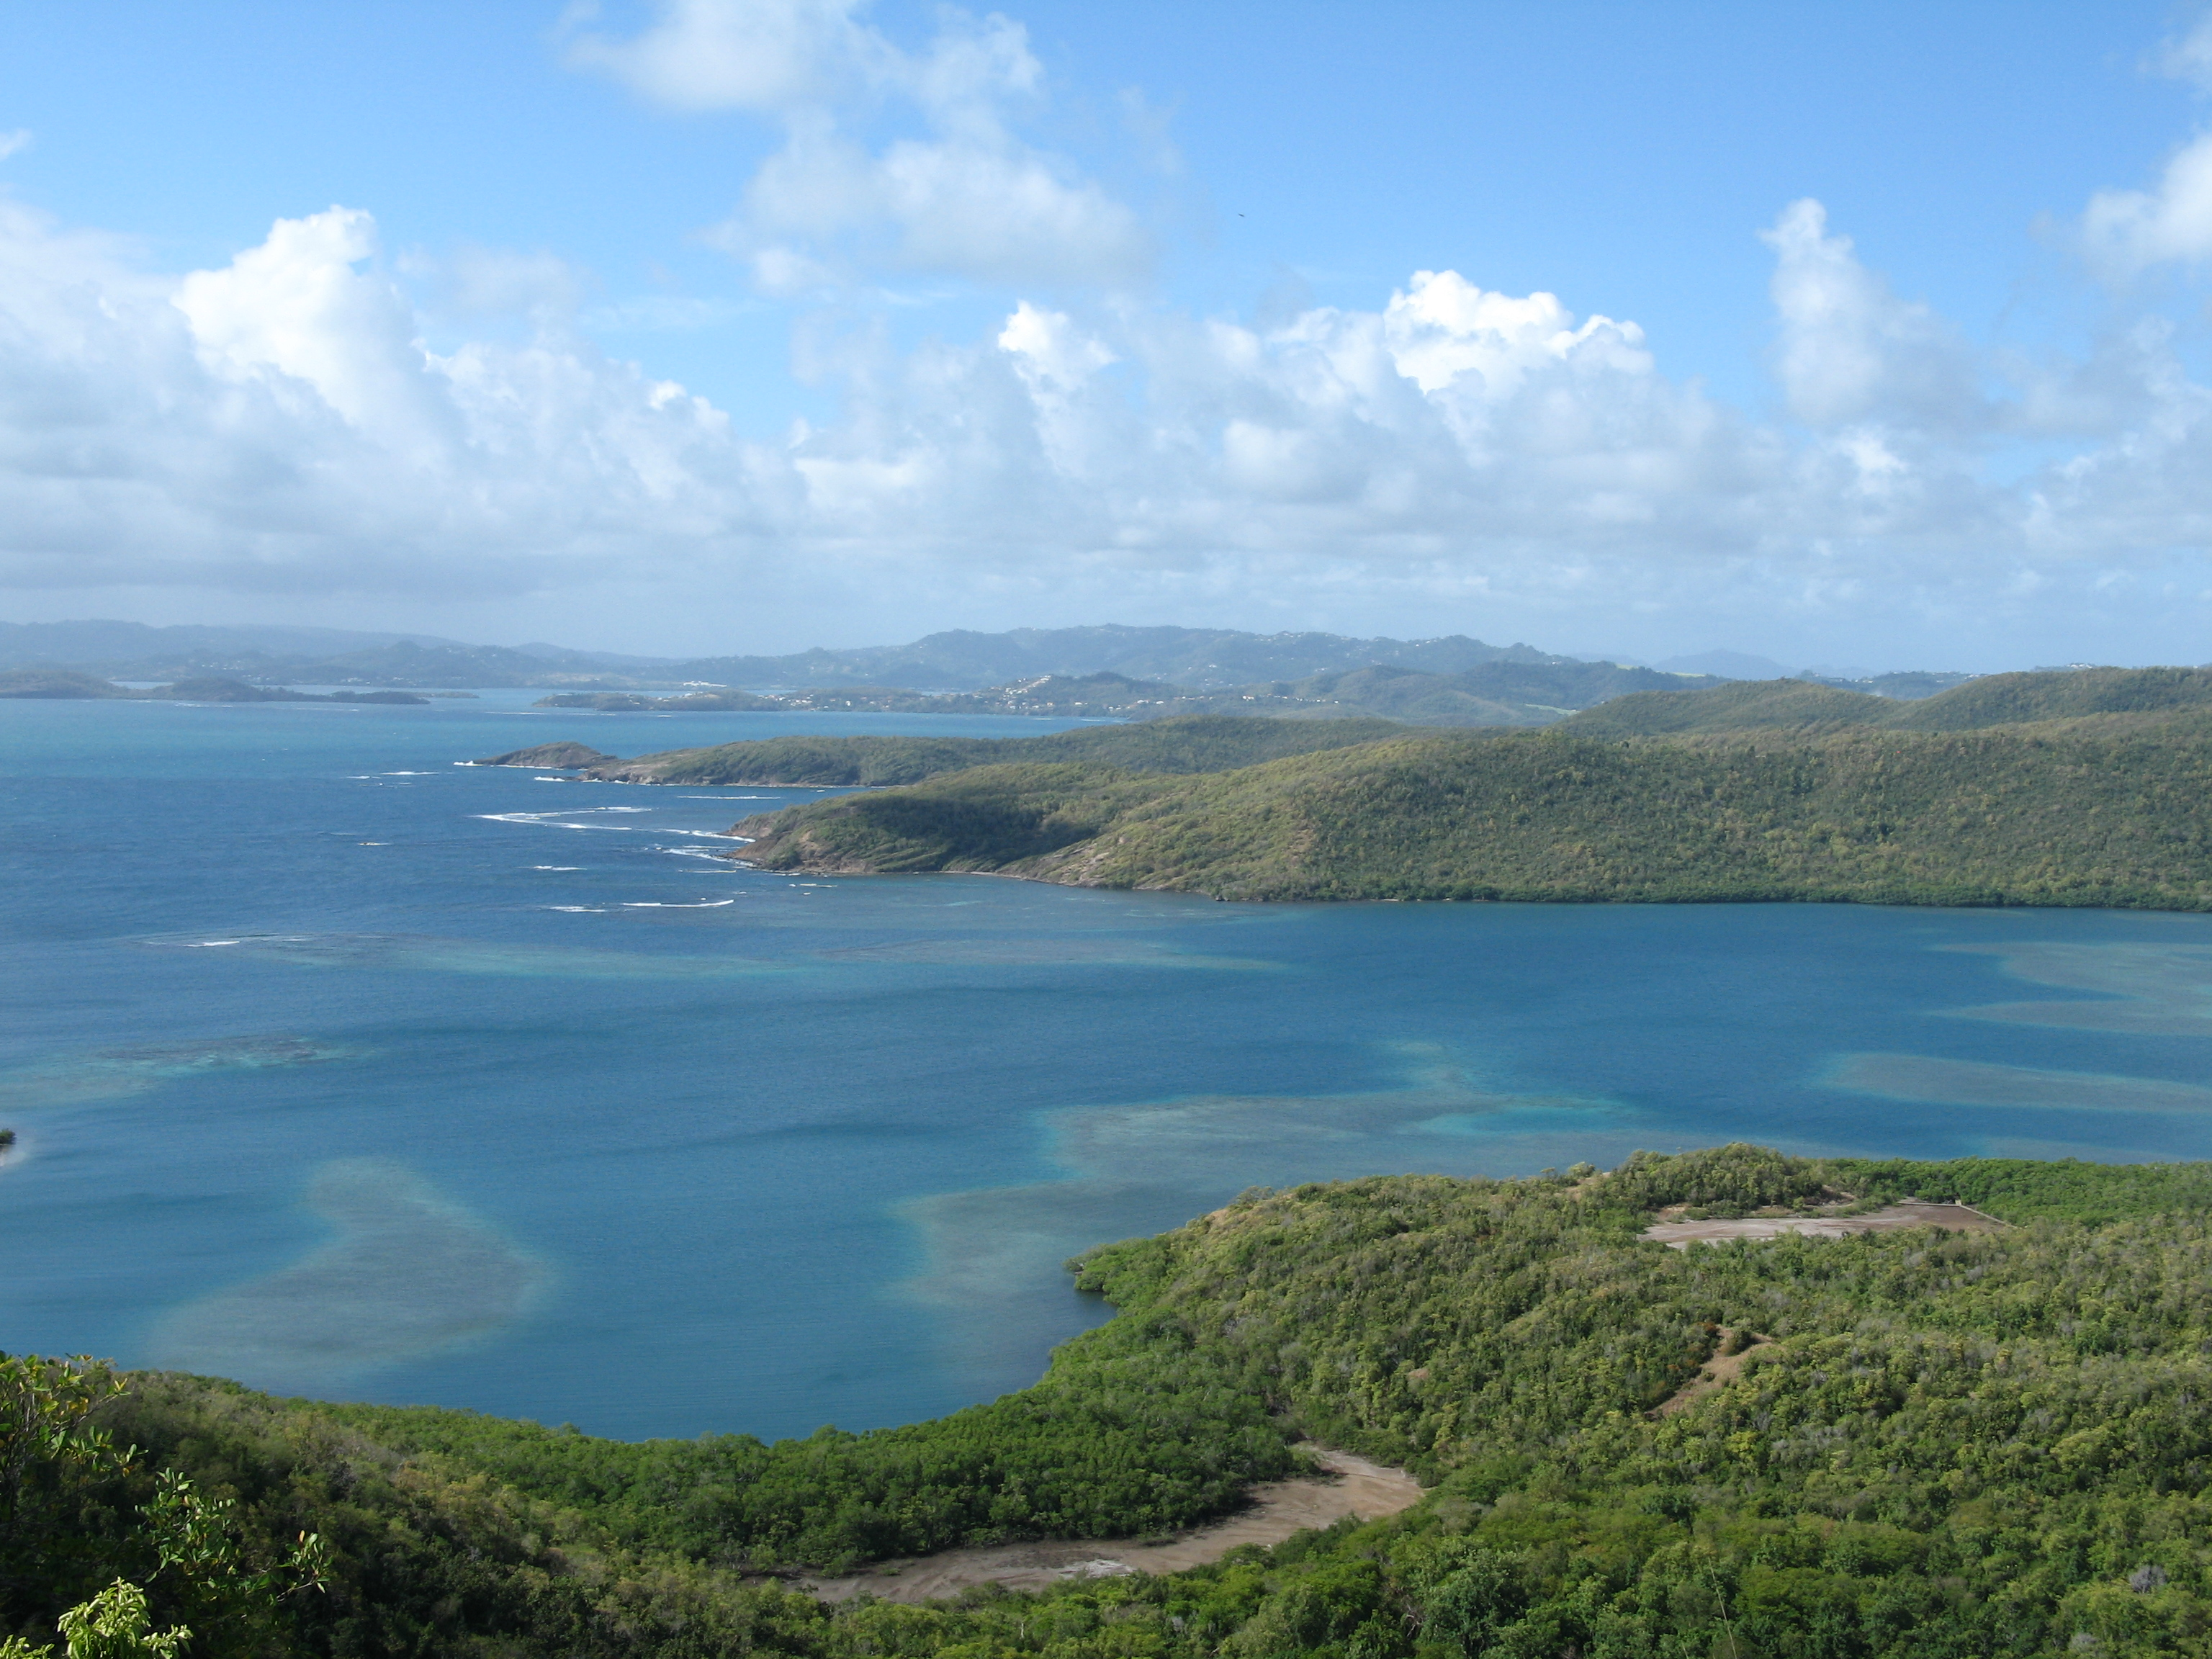 Our Guadeloupe sailing route has a lot to offer